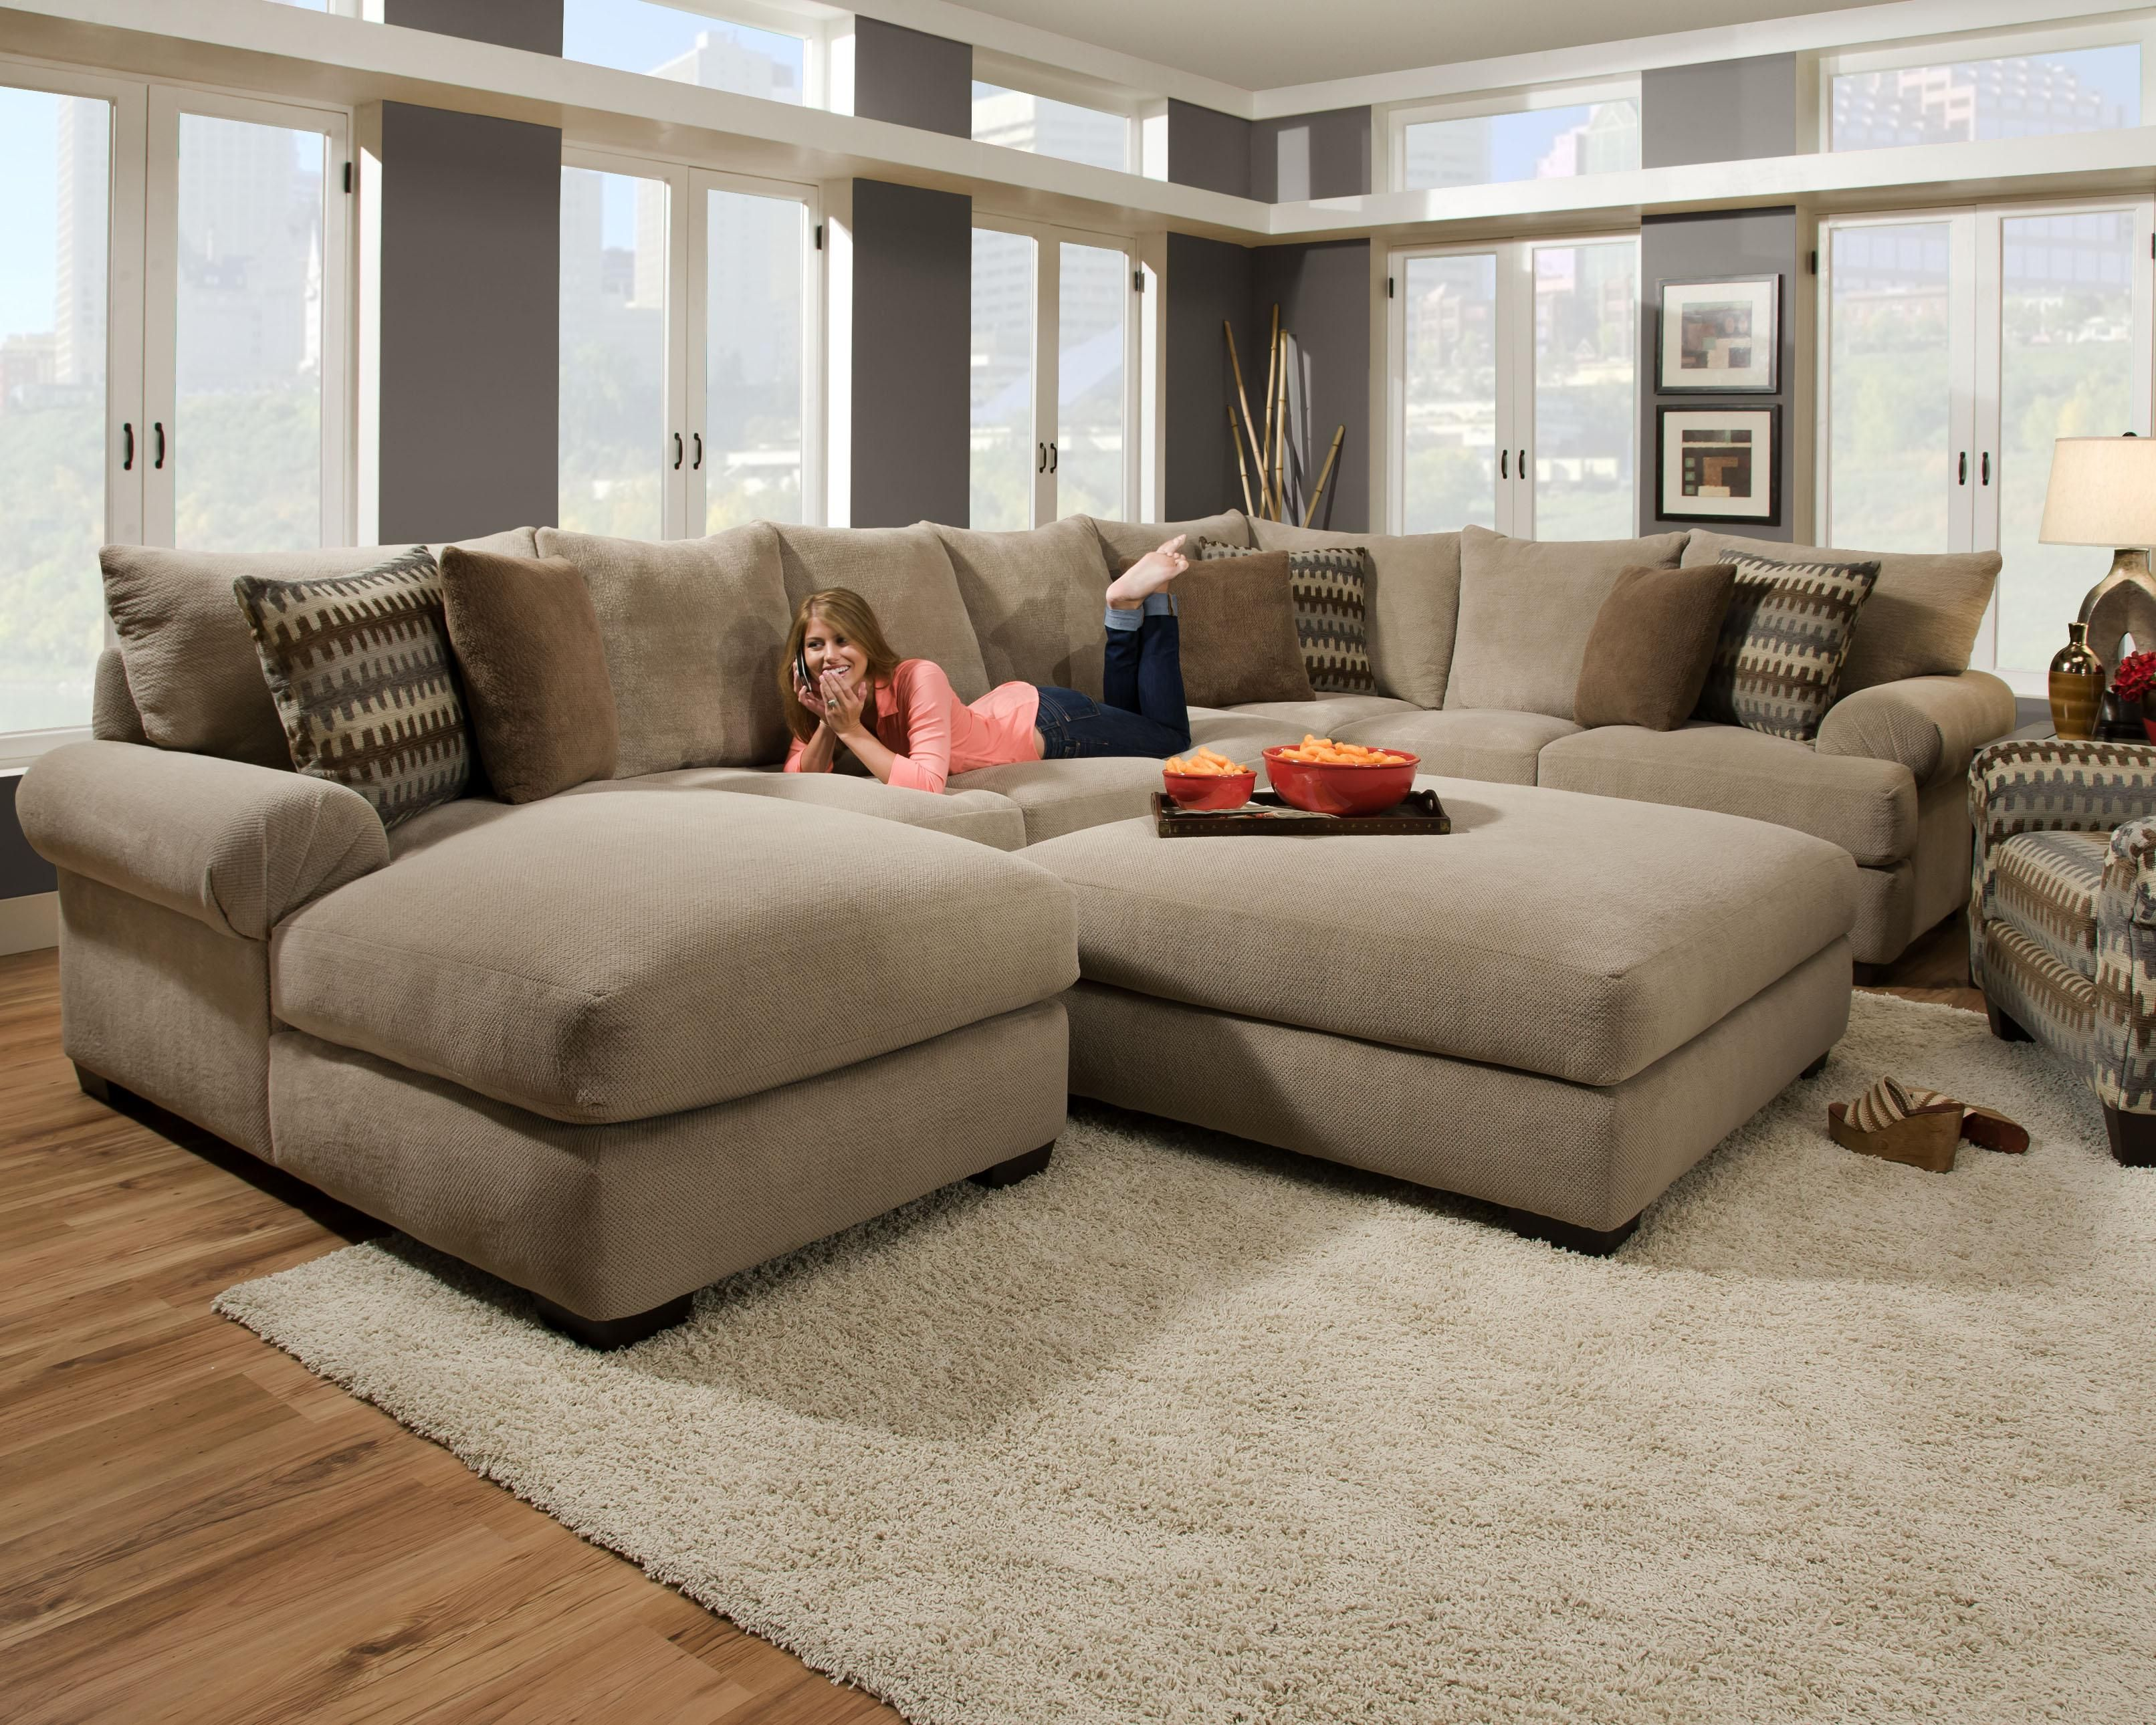 Best 25 Discount sofas ideas on Pinterest